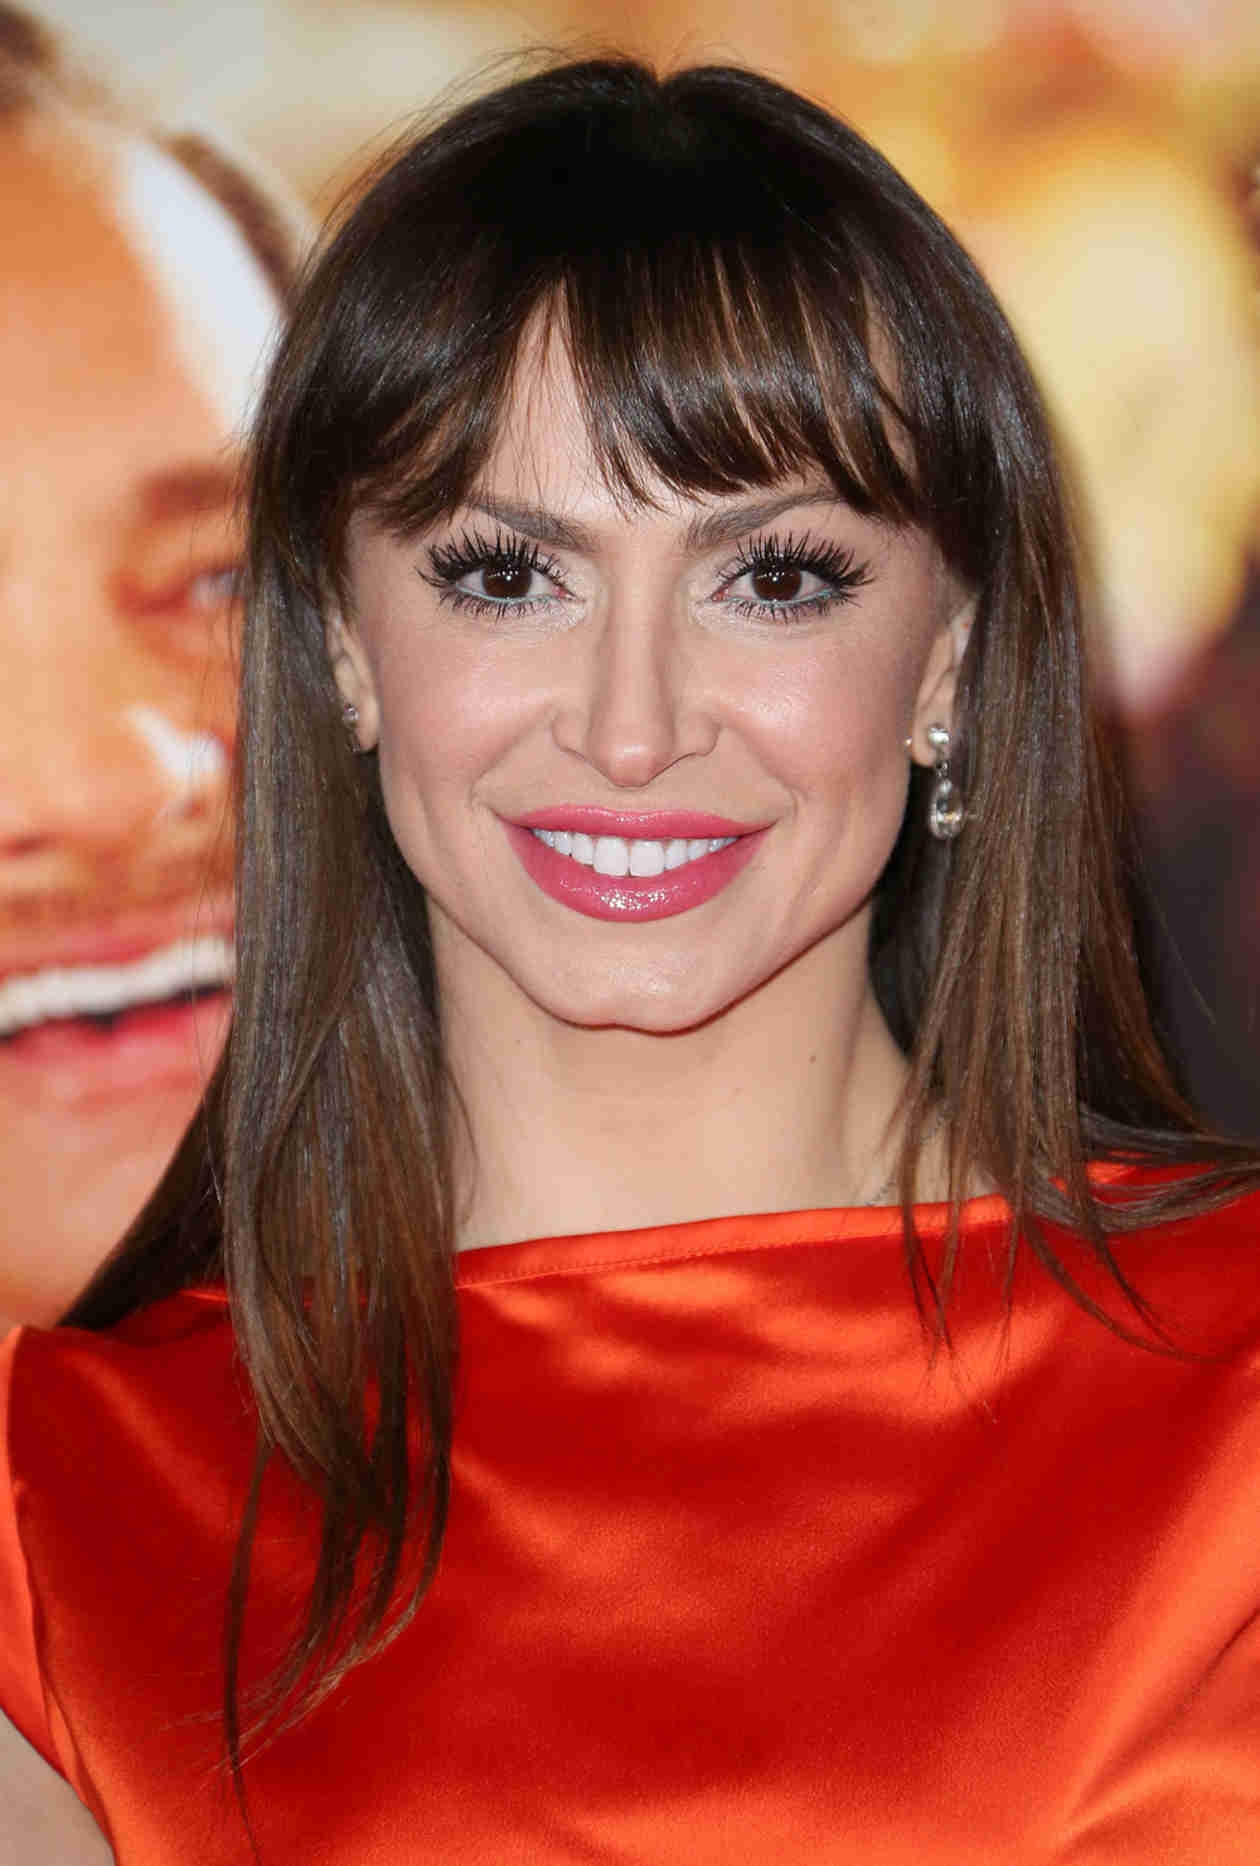 Karina Smirnoff Goes Makeup-Free in All-Natural Selfie — See the Pic!